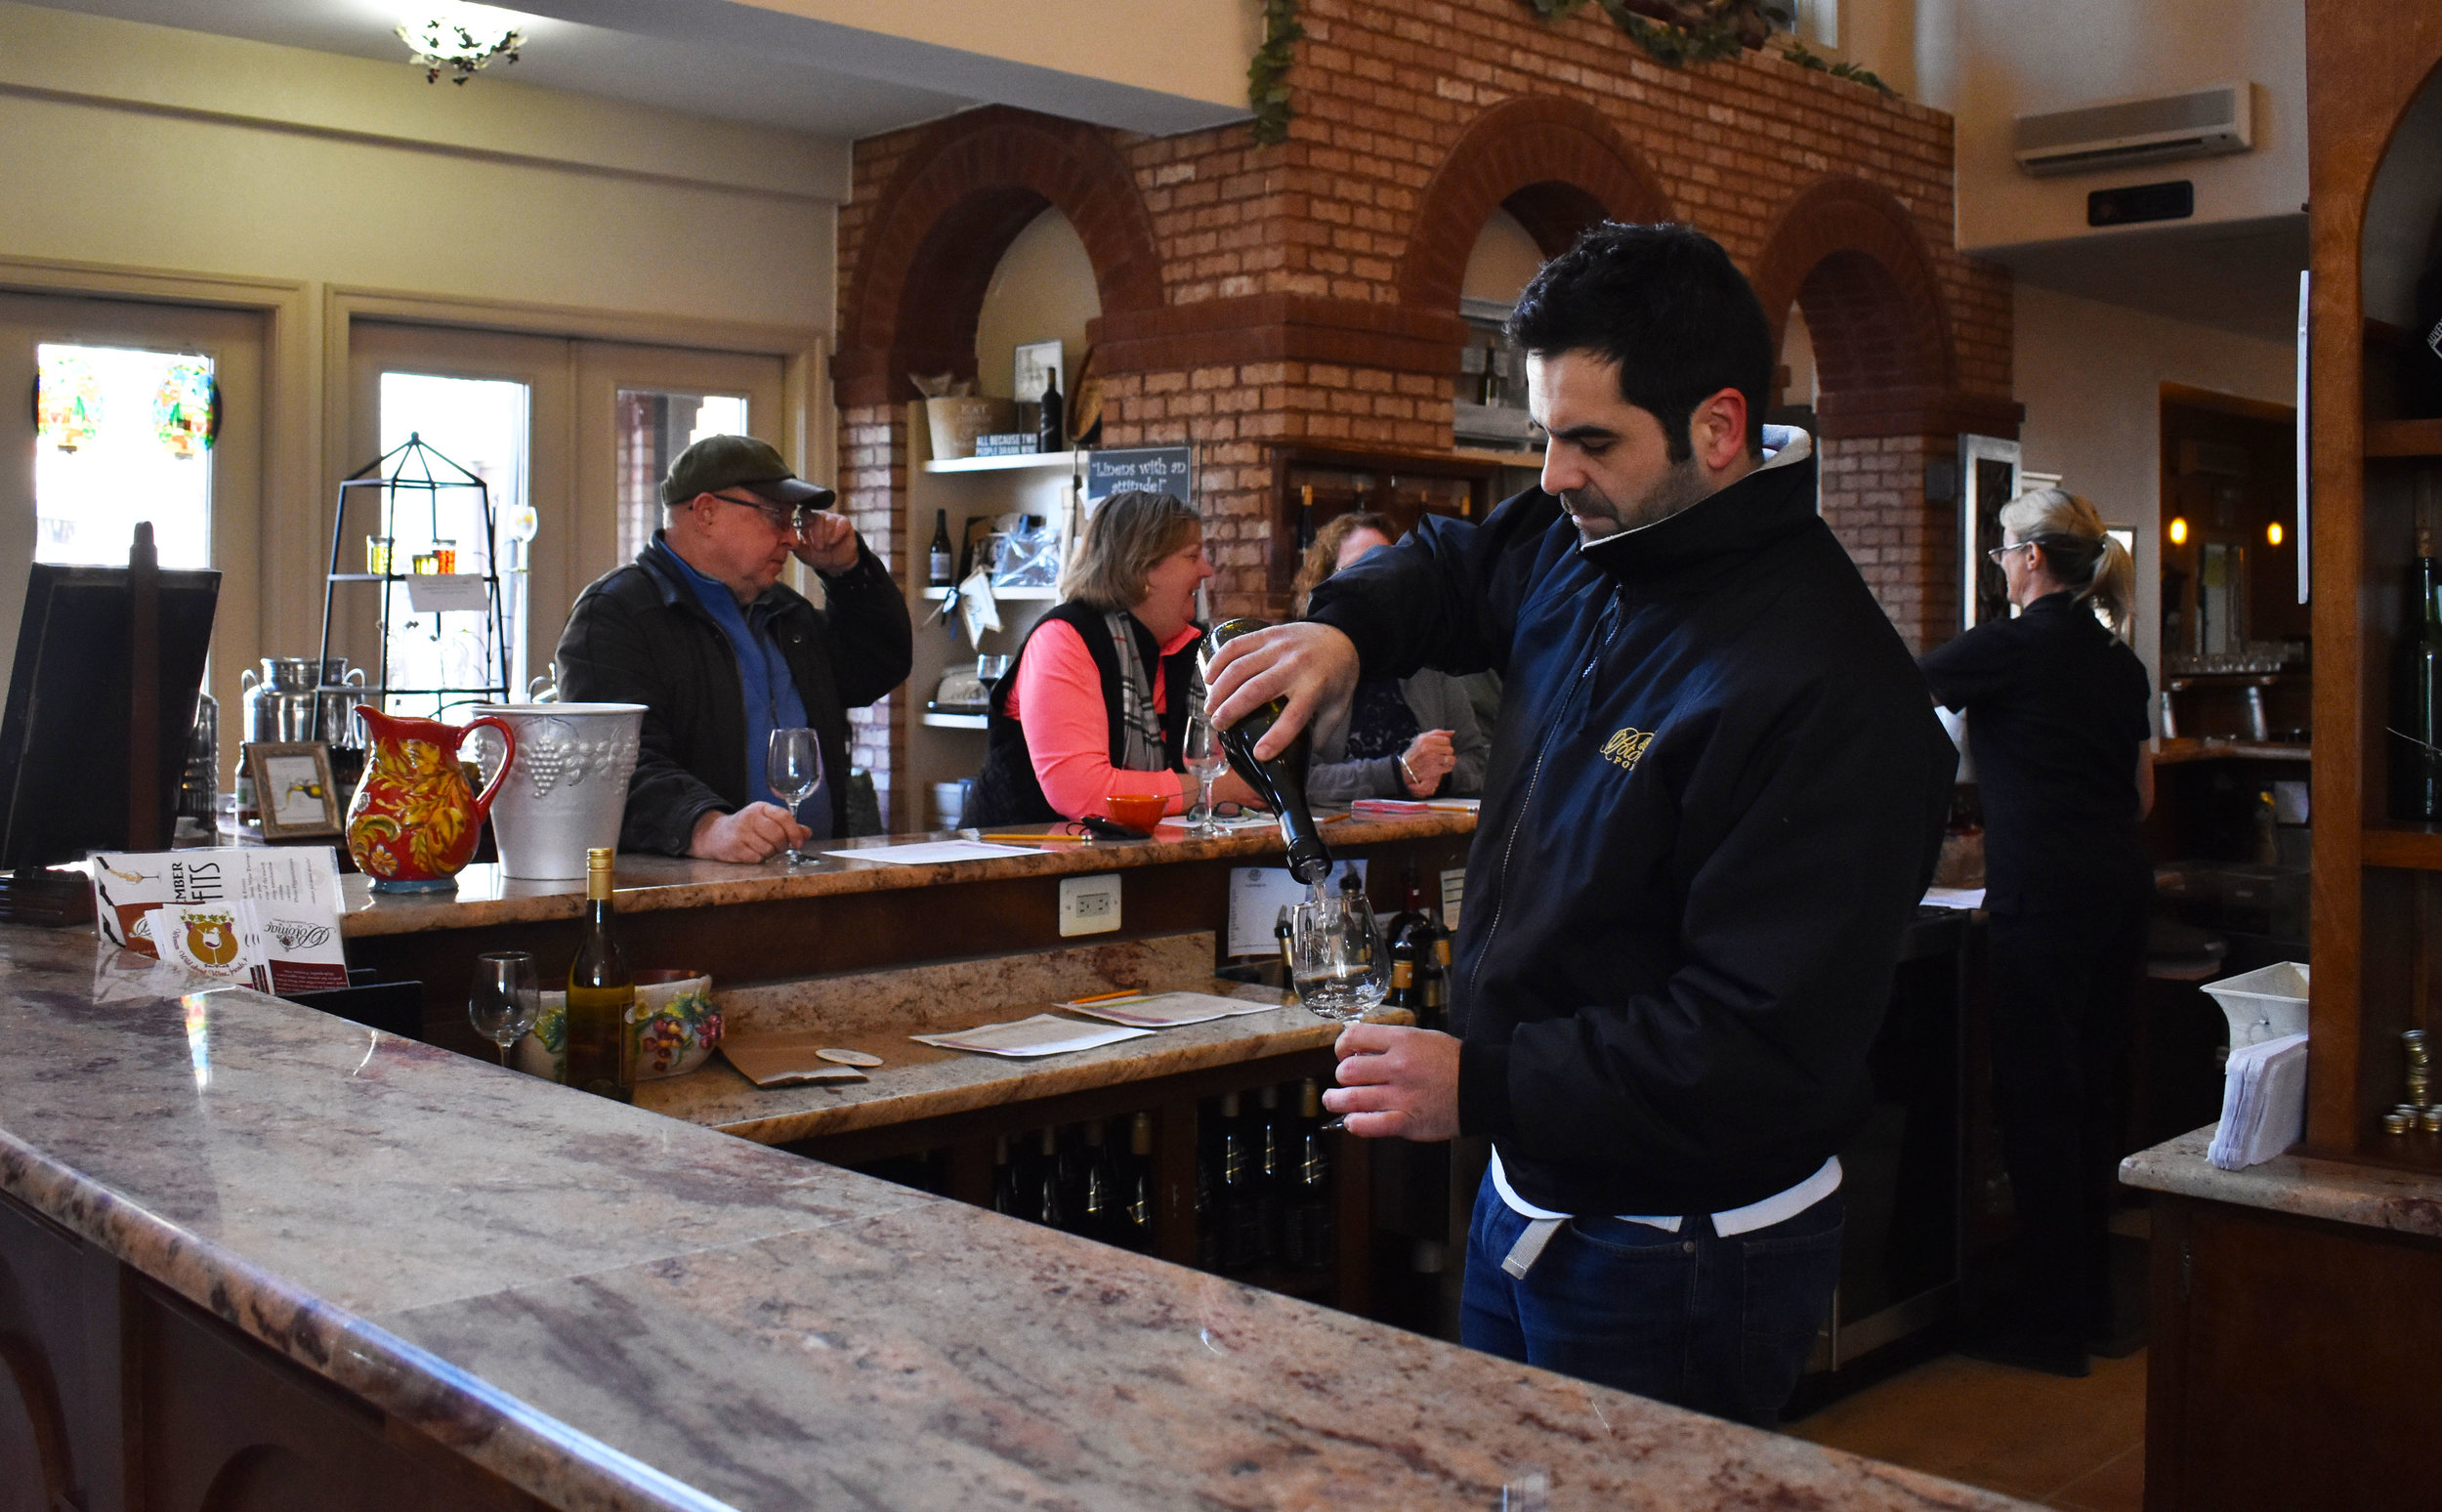 Head winemaker   David Pagan Castaño pours a bottle of white wine in the tasting room at Potomac Point Vineyard and Winery in Stafford, Va., Friday, Feb. 2, 2018. (Lindsey Leake/American University)